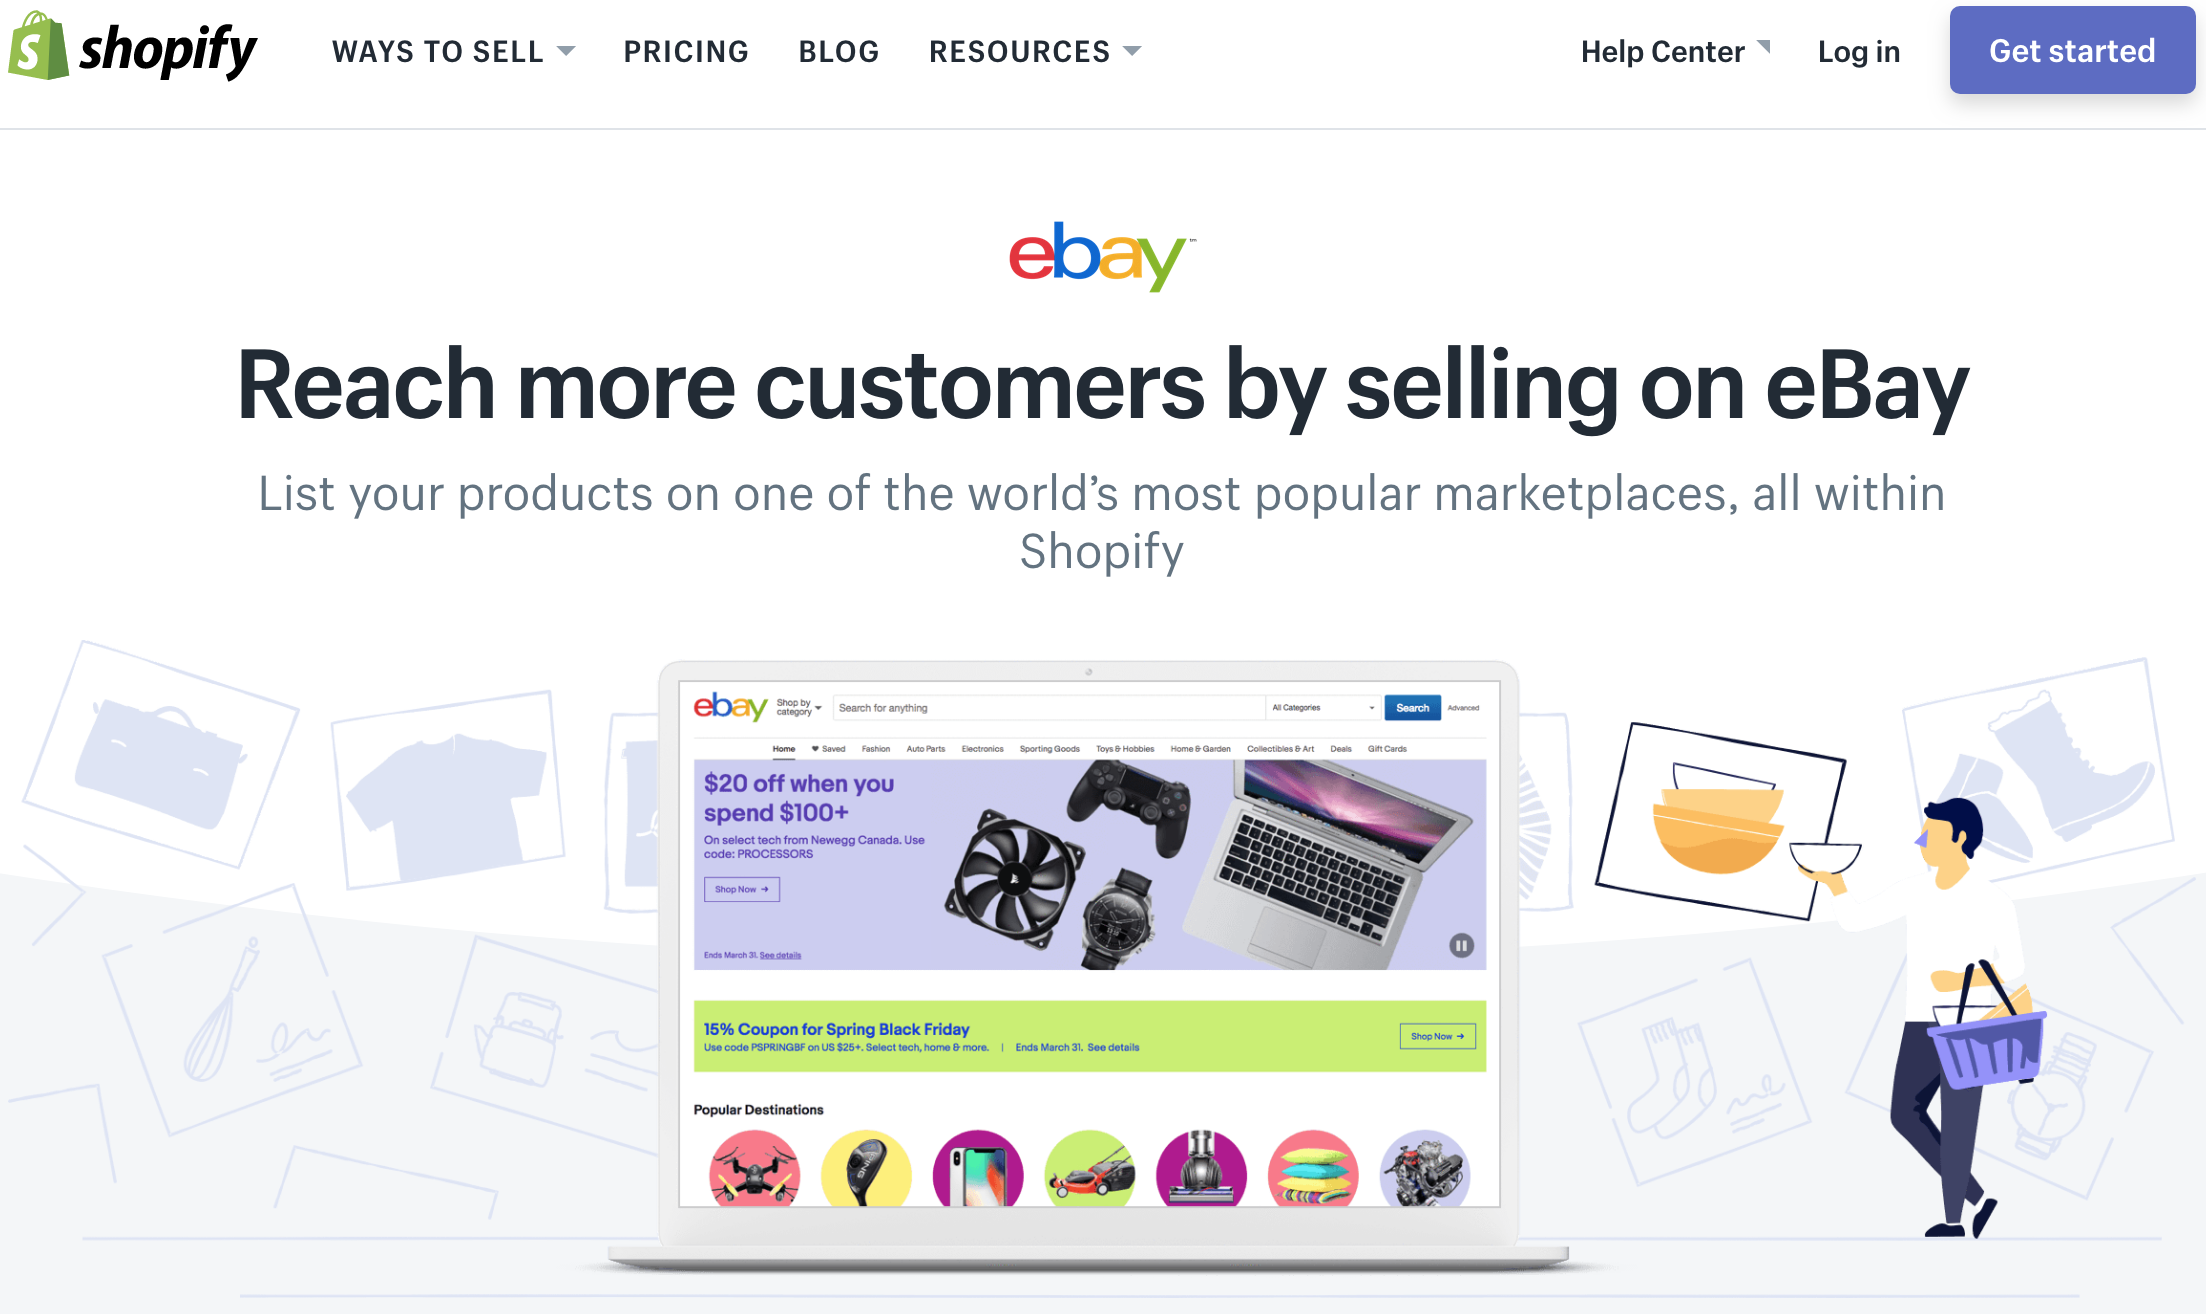 Where To Sell Online, Shopify or EBay? - Uplinkly Software